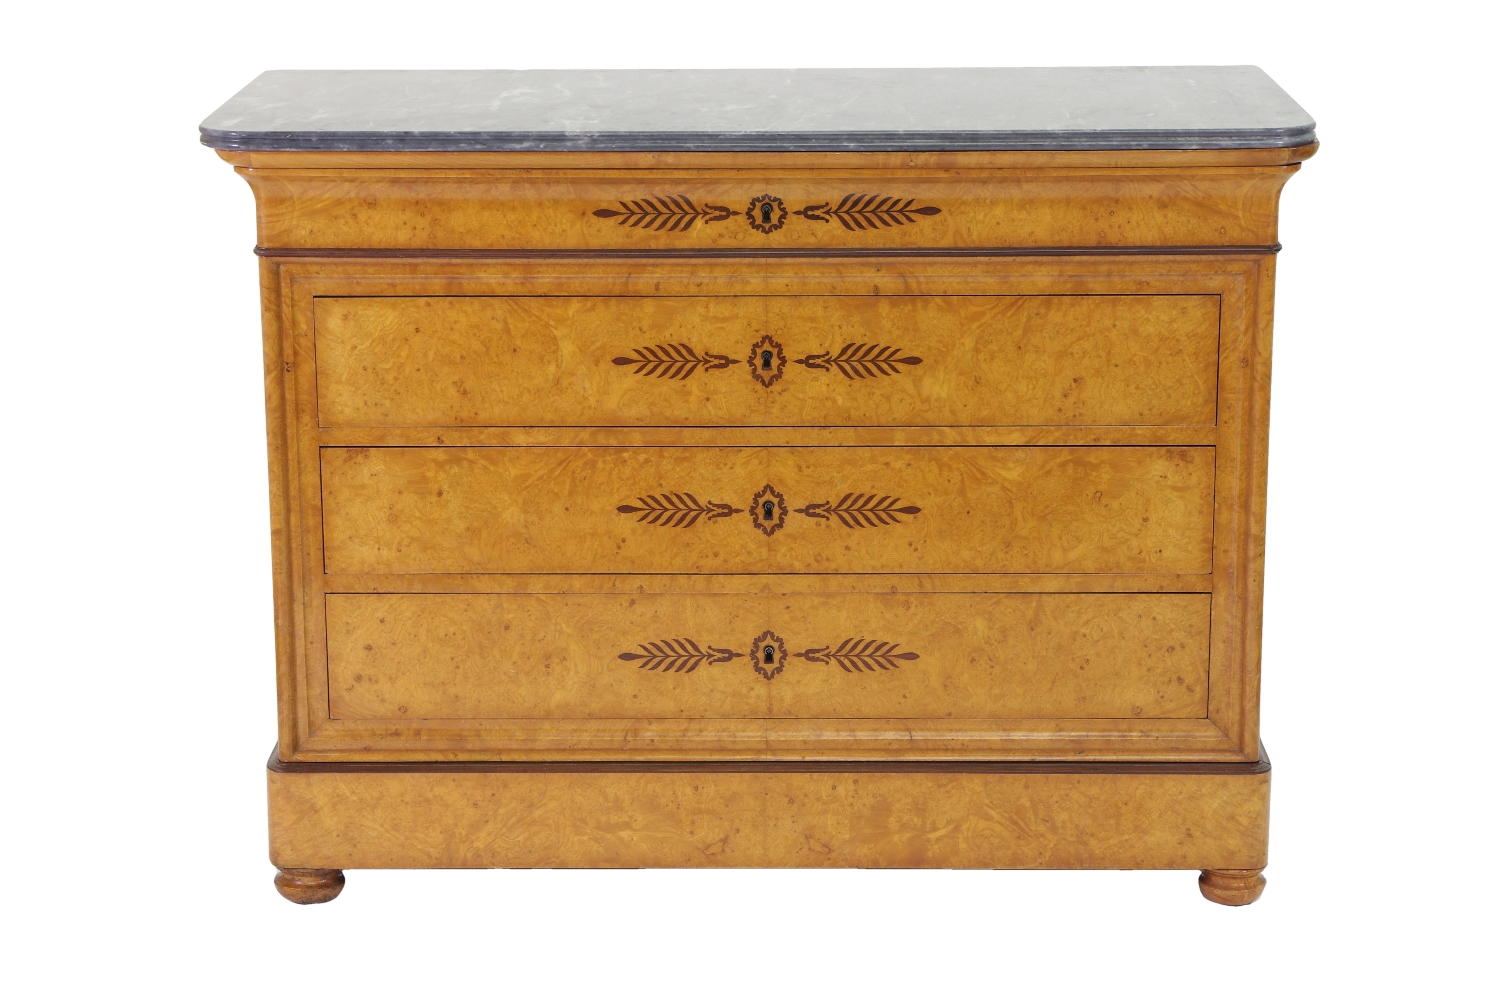 View 1: French Restauration Burr Ash Chest of Drawers, c. 1825